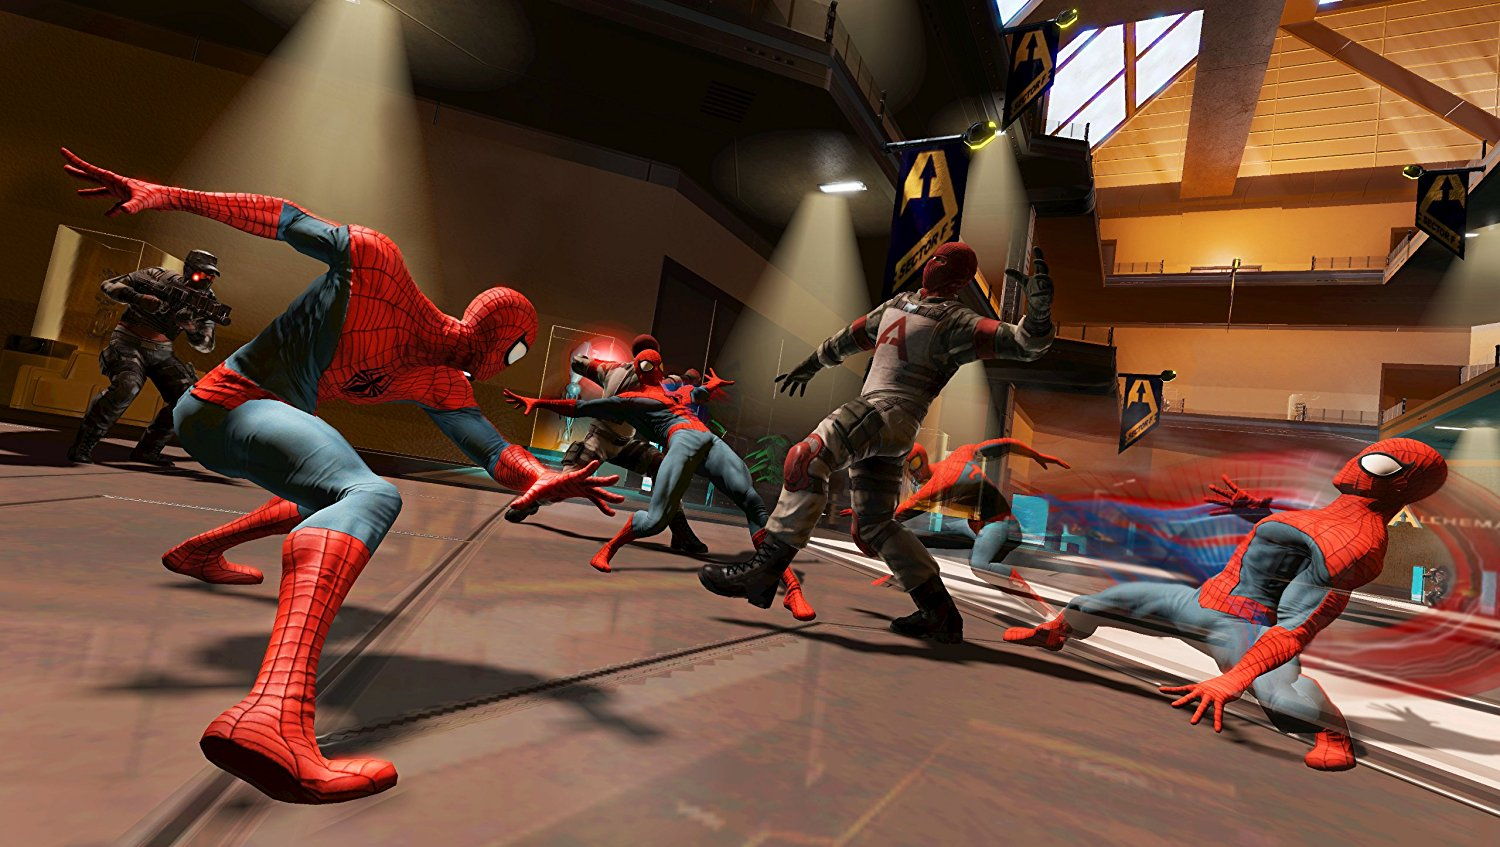 Spider-Man, Edge of Time, Spider-Man: Edge of Time, Spider-Man: Edge of Time Review, Xbox, Xbox 360, PS3, Wii, 3DS, Game, Review, Reviews,